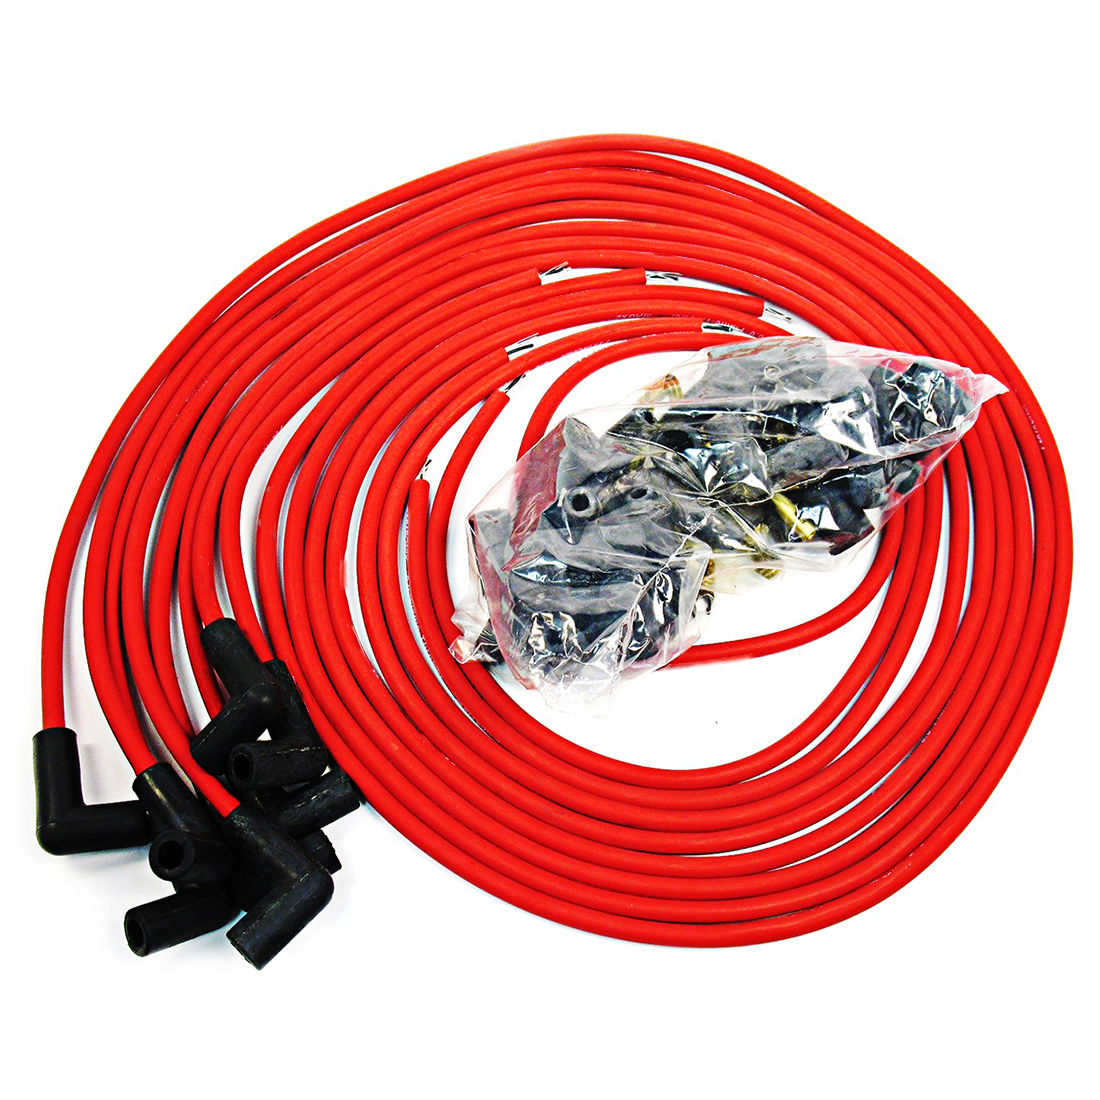 details about 9 5 mm red 90 degree spark plug wires for distributor chevy bbc sbc sbf 302 350